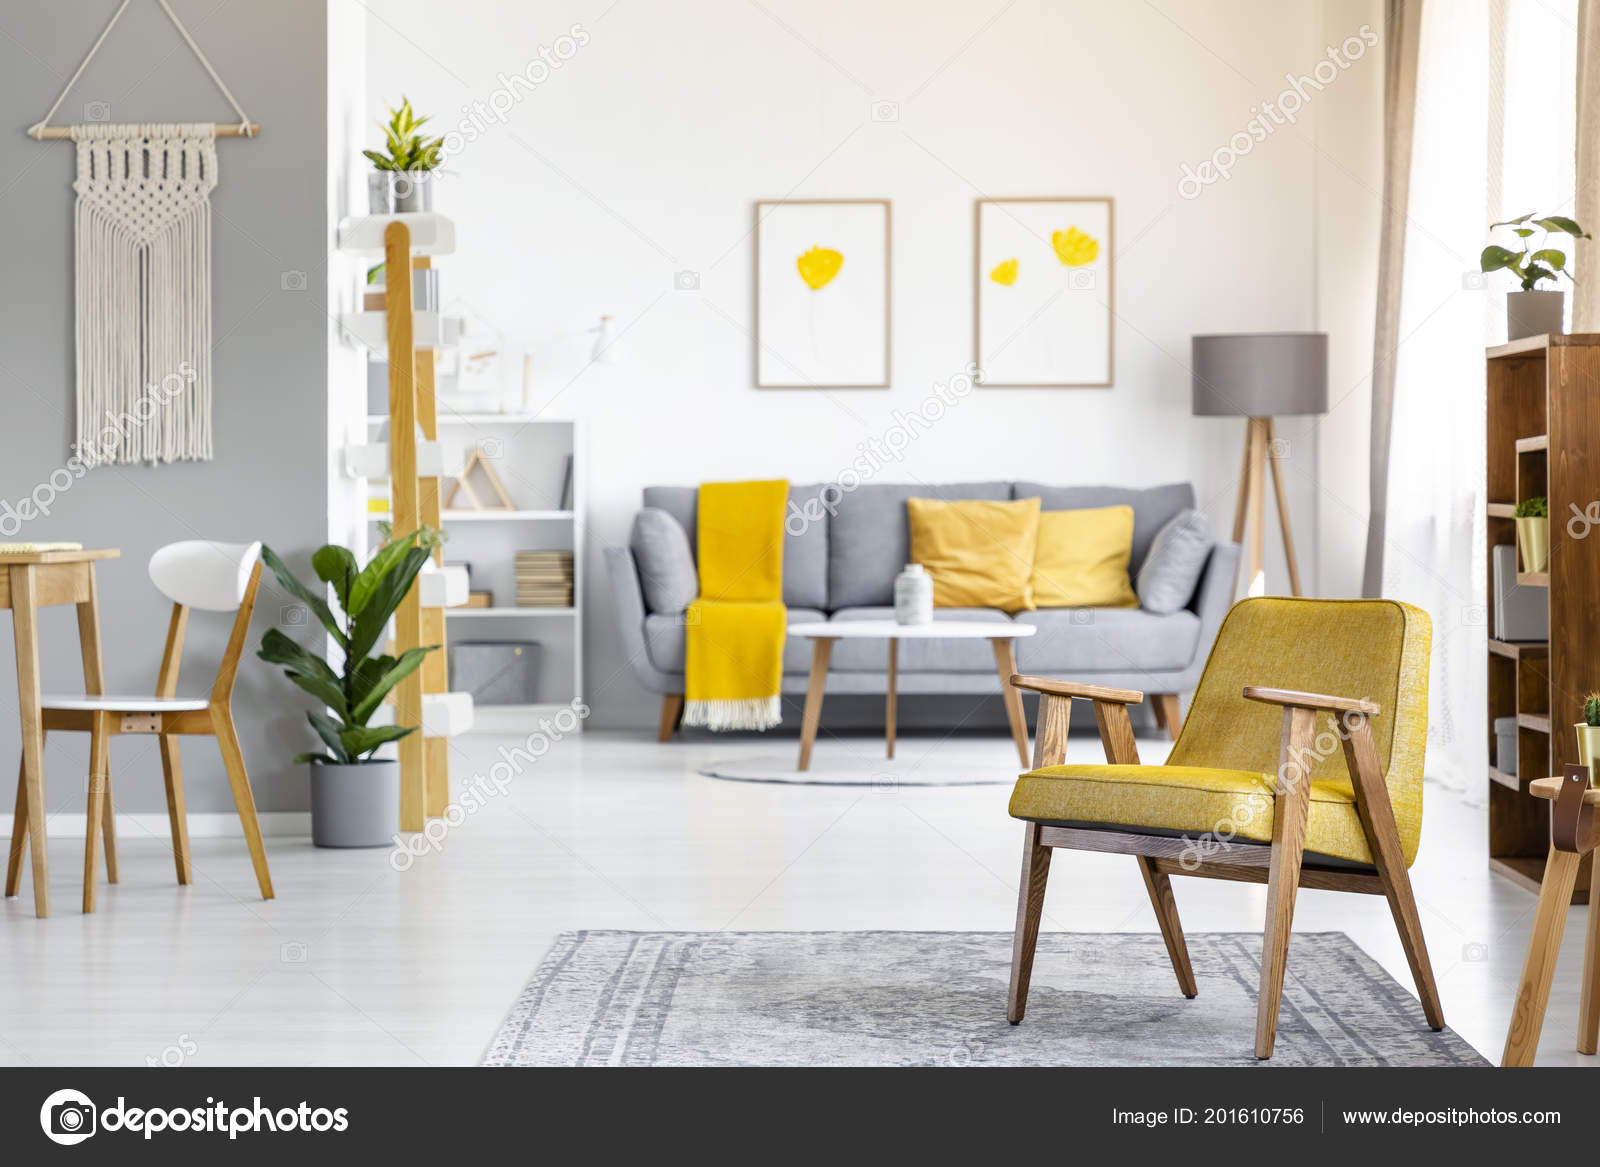 Grey And Yellow Chair Yellow Armchair Rug Plant Open Space Interior Posters Grey Couch